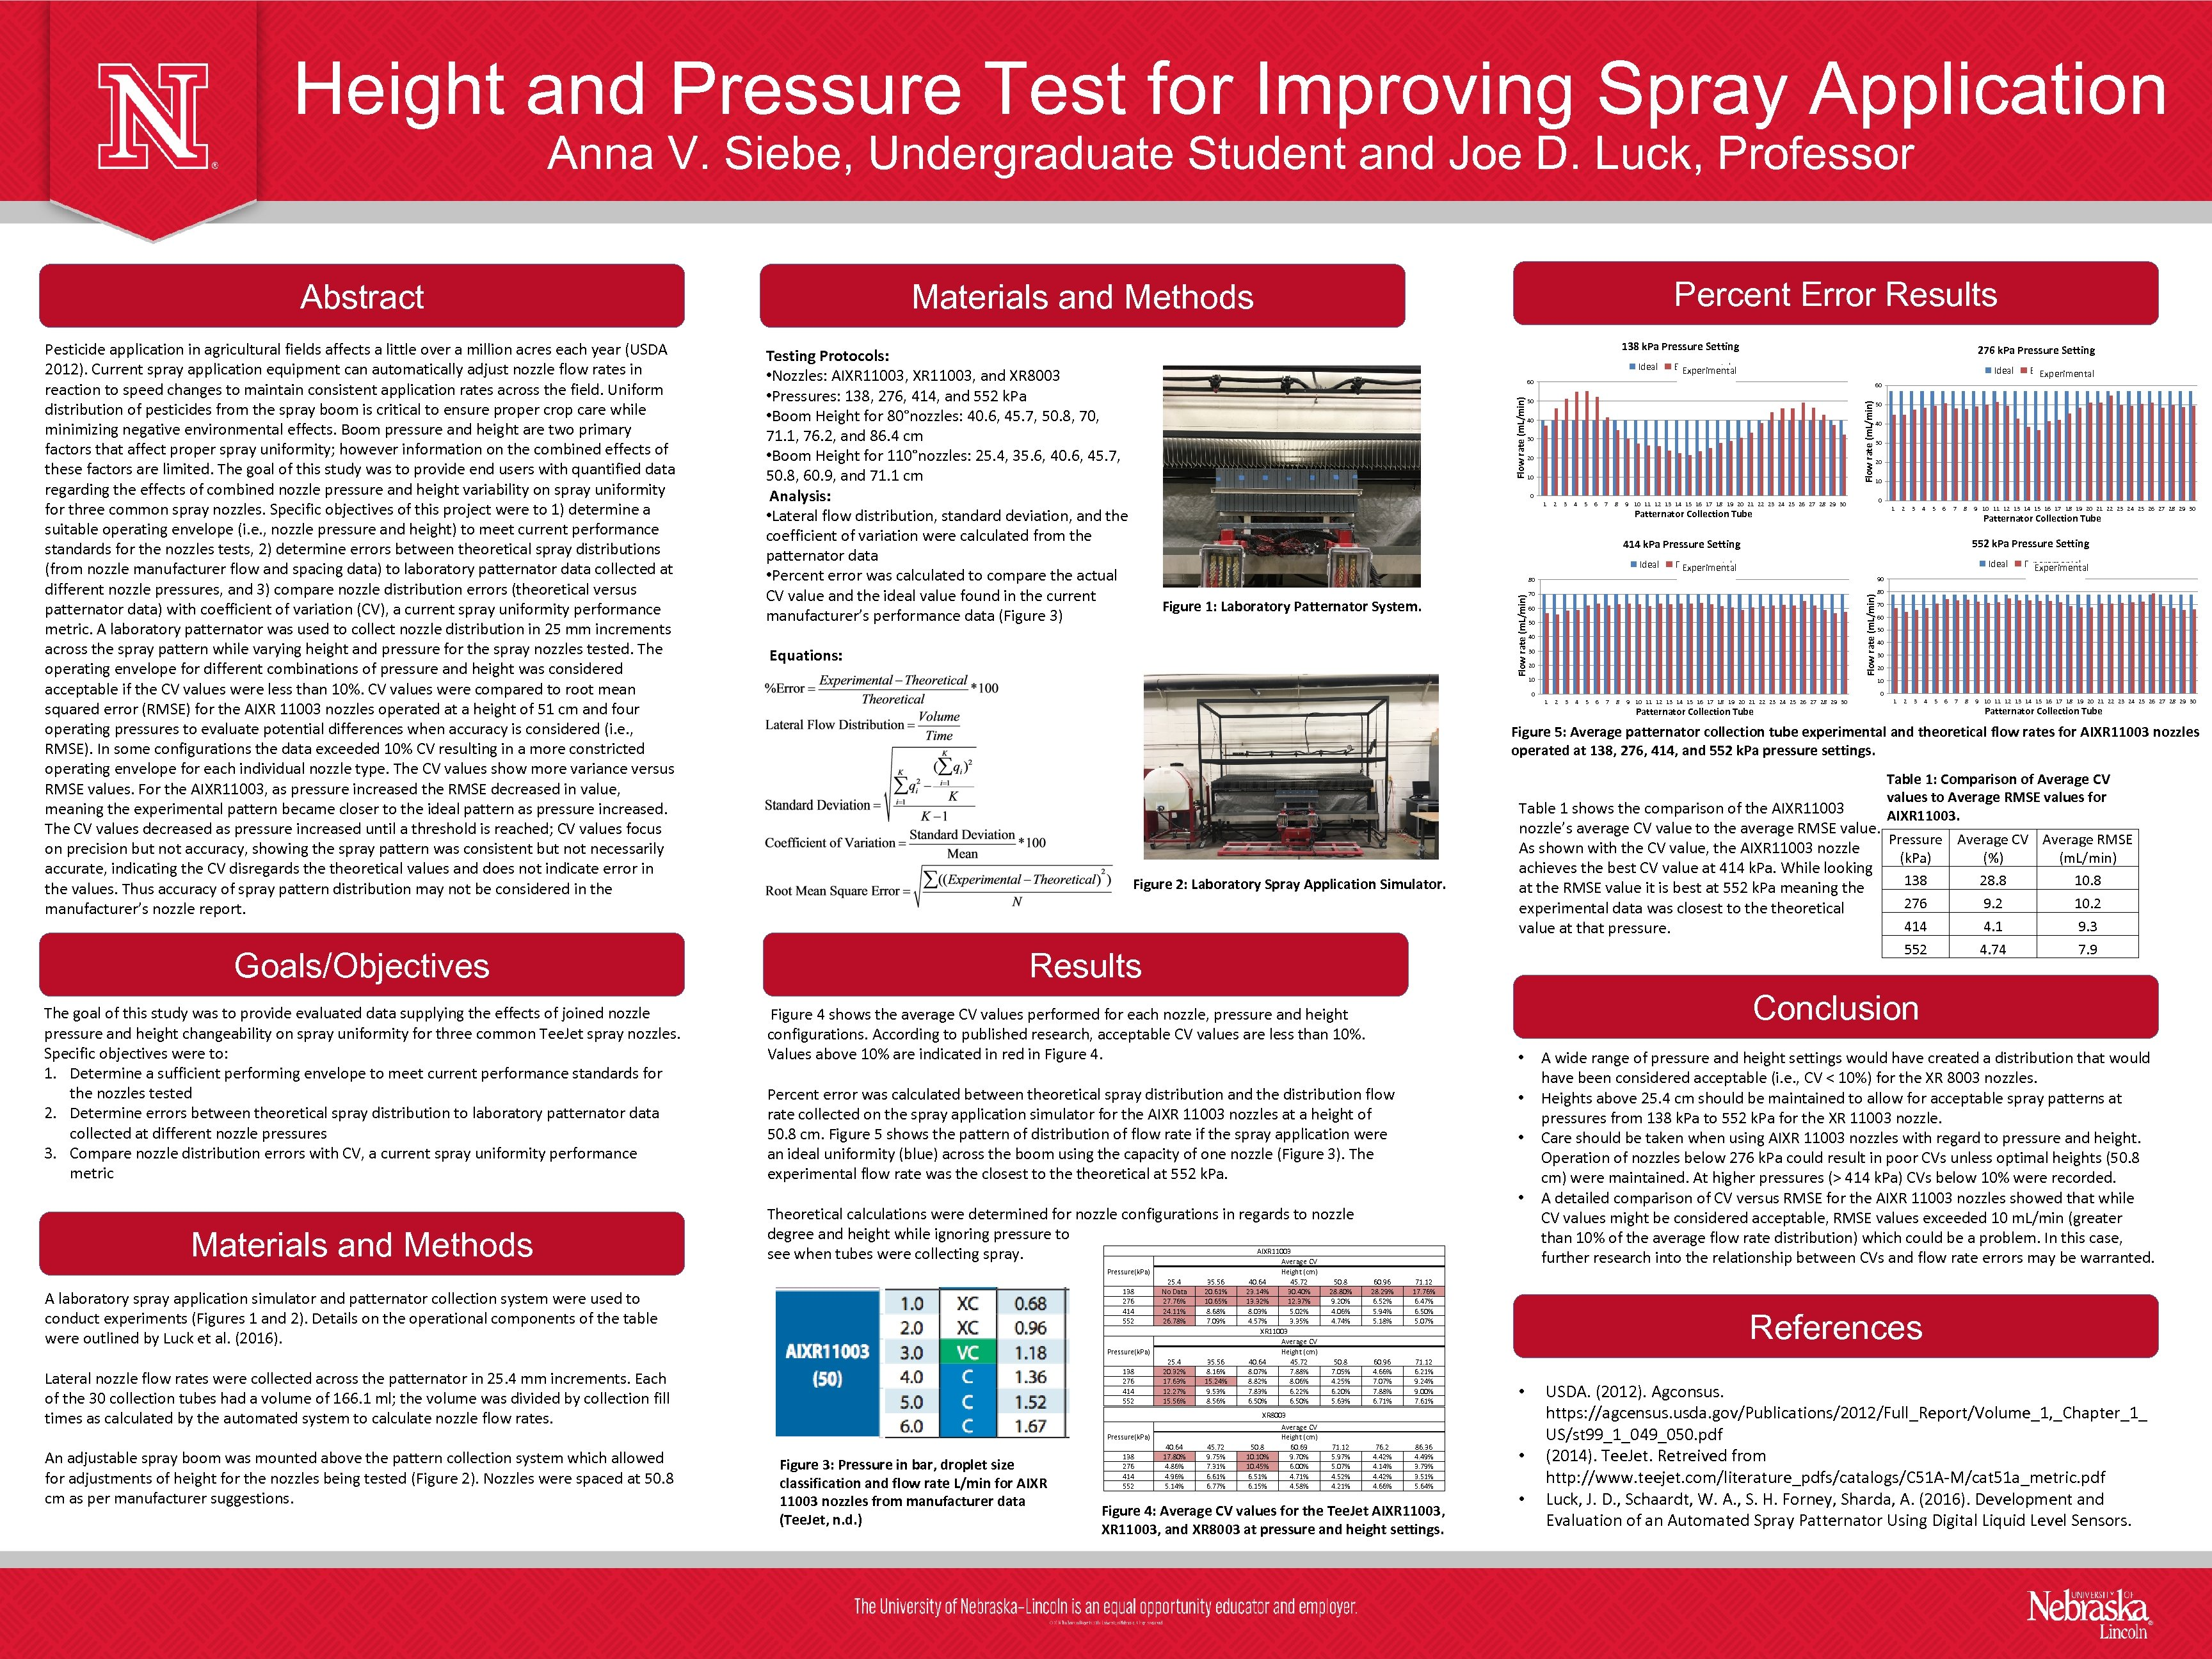 Height and Pressure Test for Improving Spray Application Anna V. Siebe, Undergraduate Student and